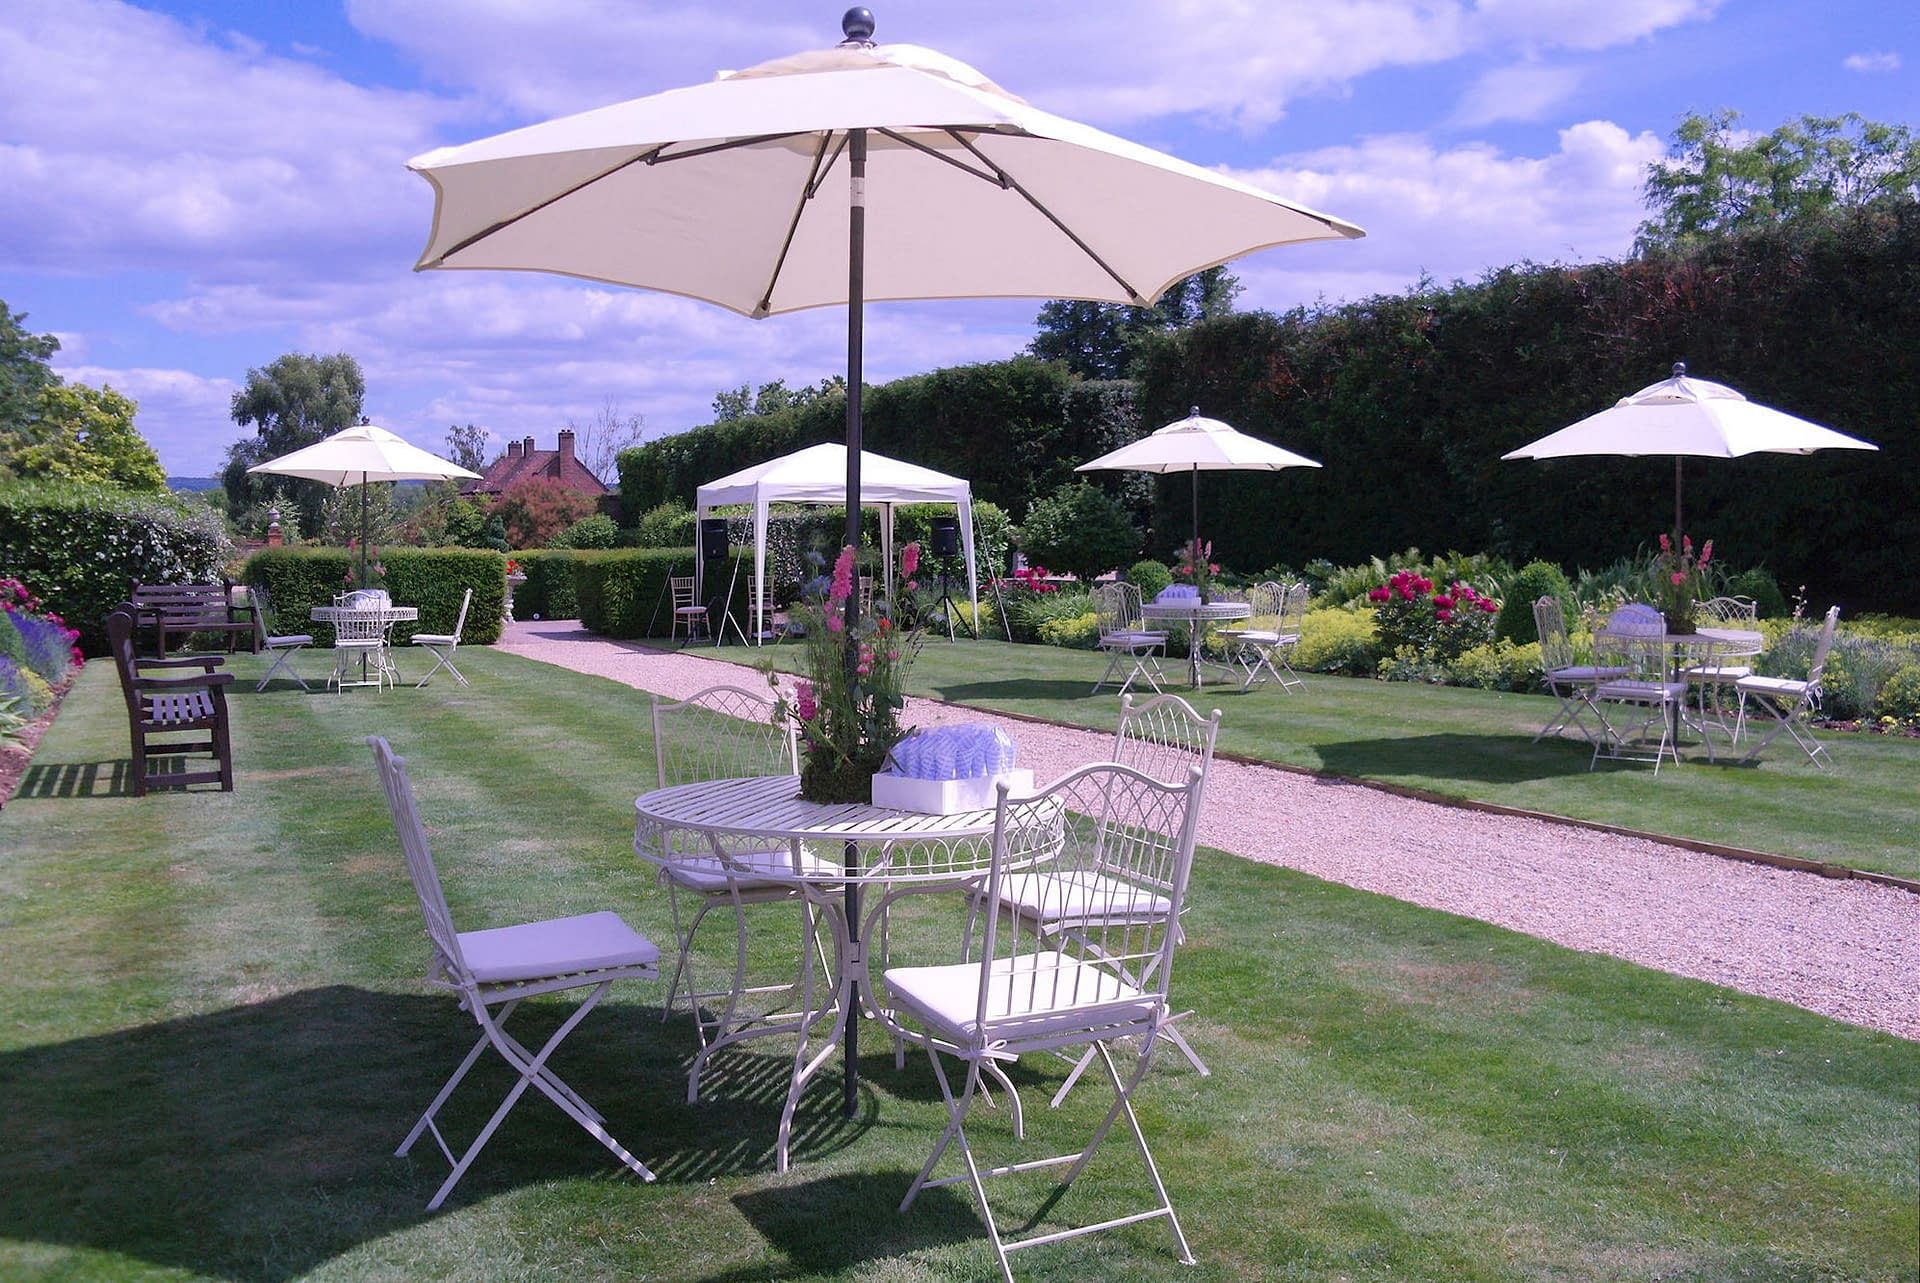 Vintage-style cream garden furniture with matching parasols at The Four Seasons Hotel, Hook, UK wedding venue